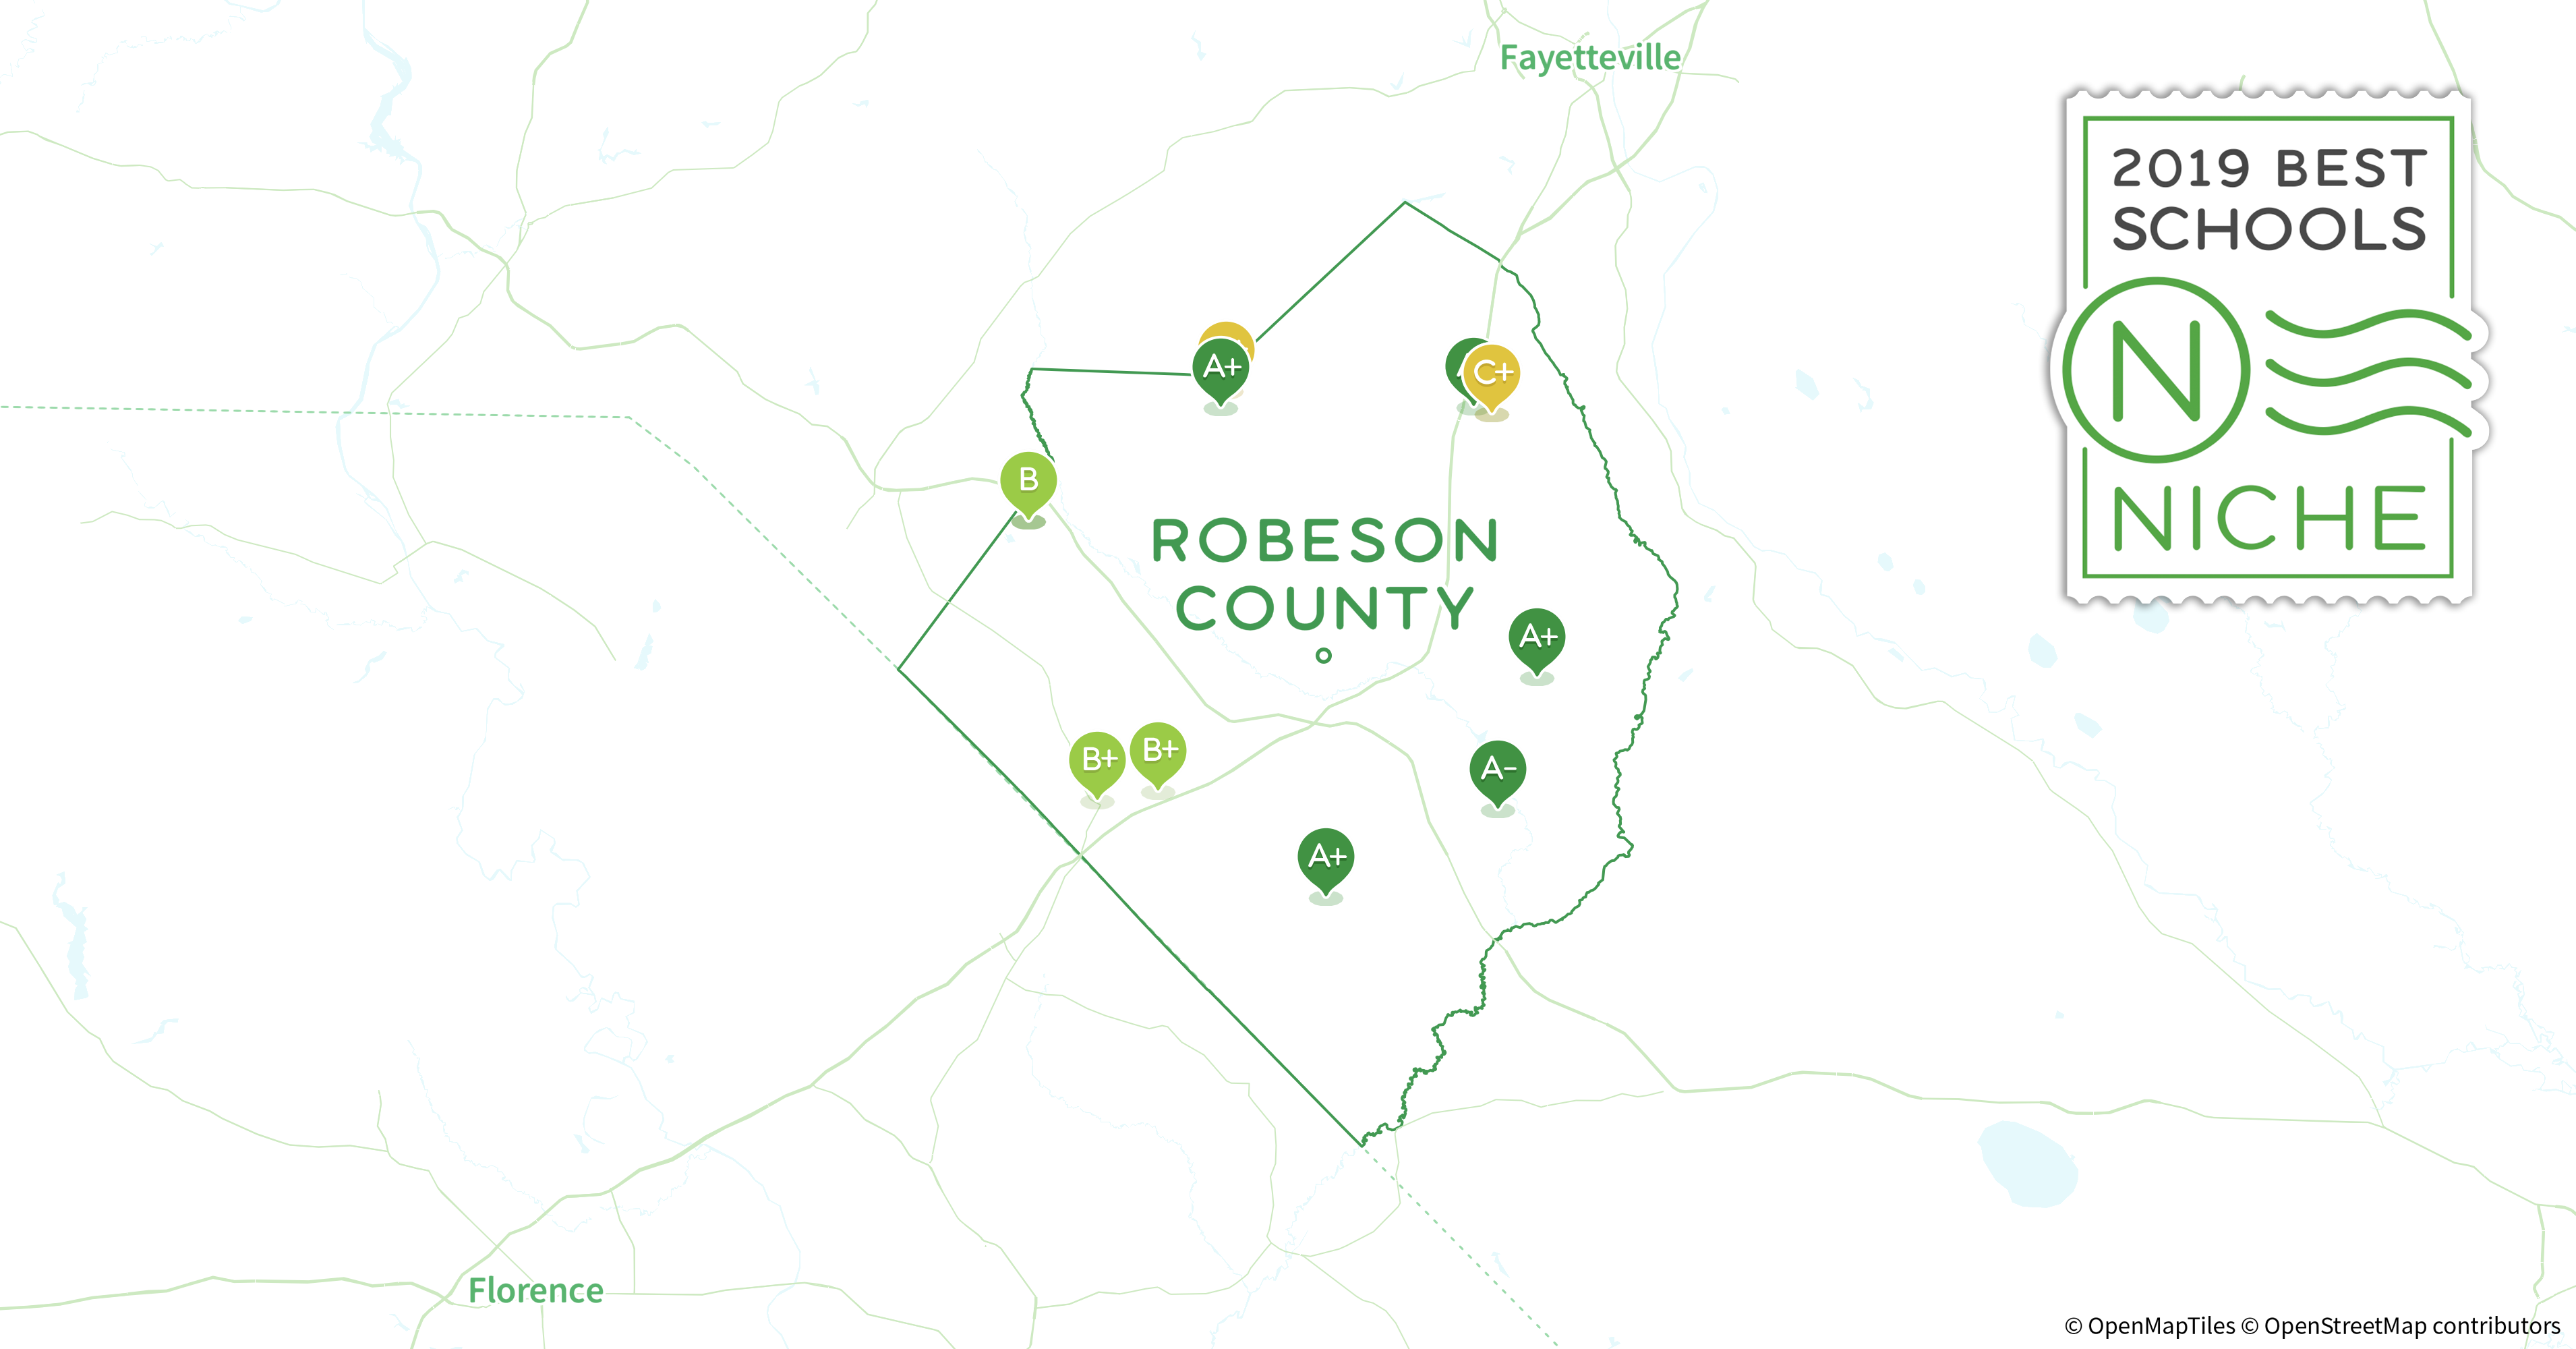 2019 Best Public Elementary Schools In Robeson County Nc Niche